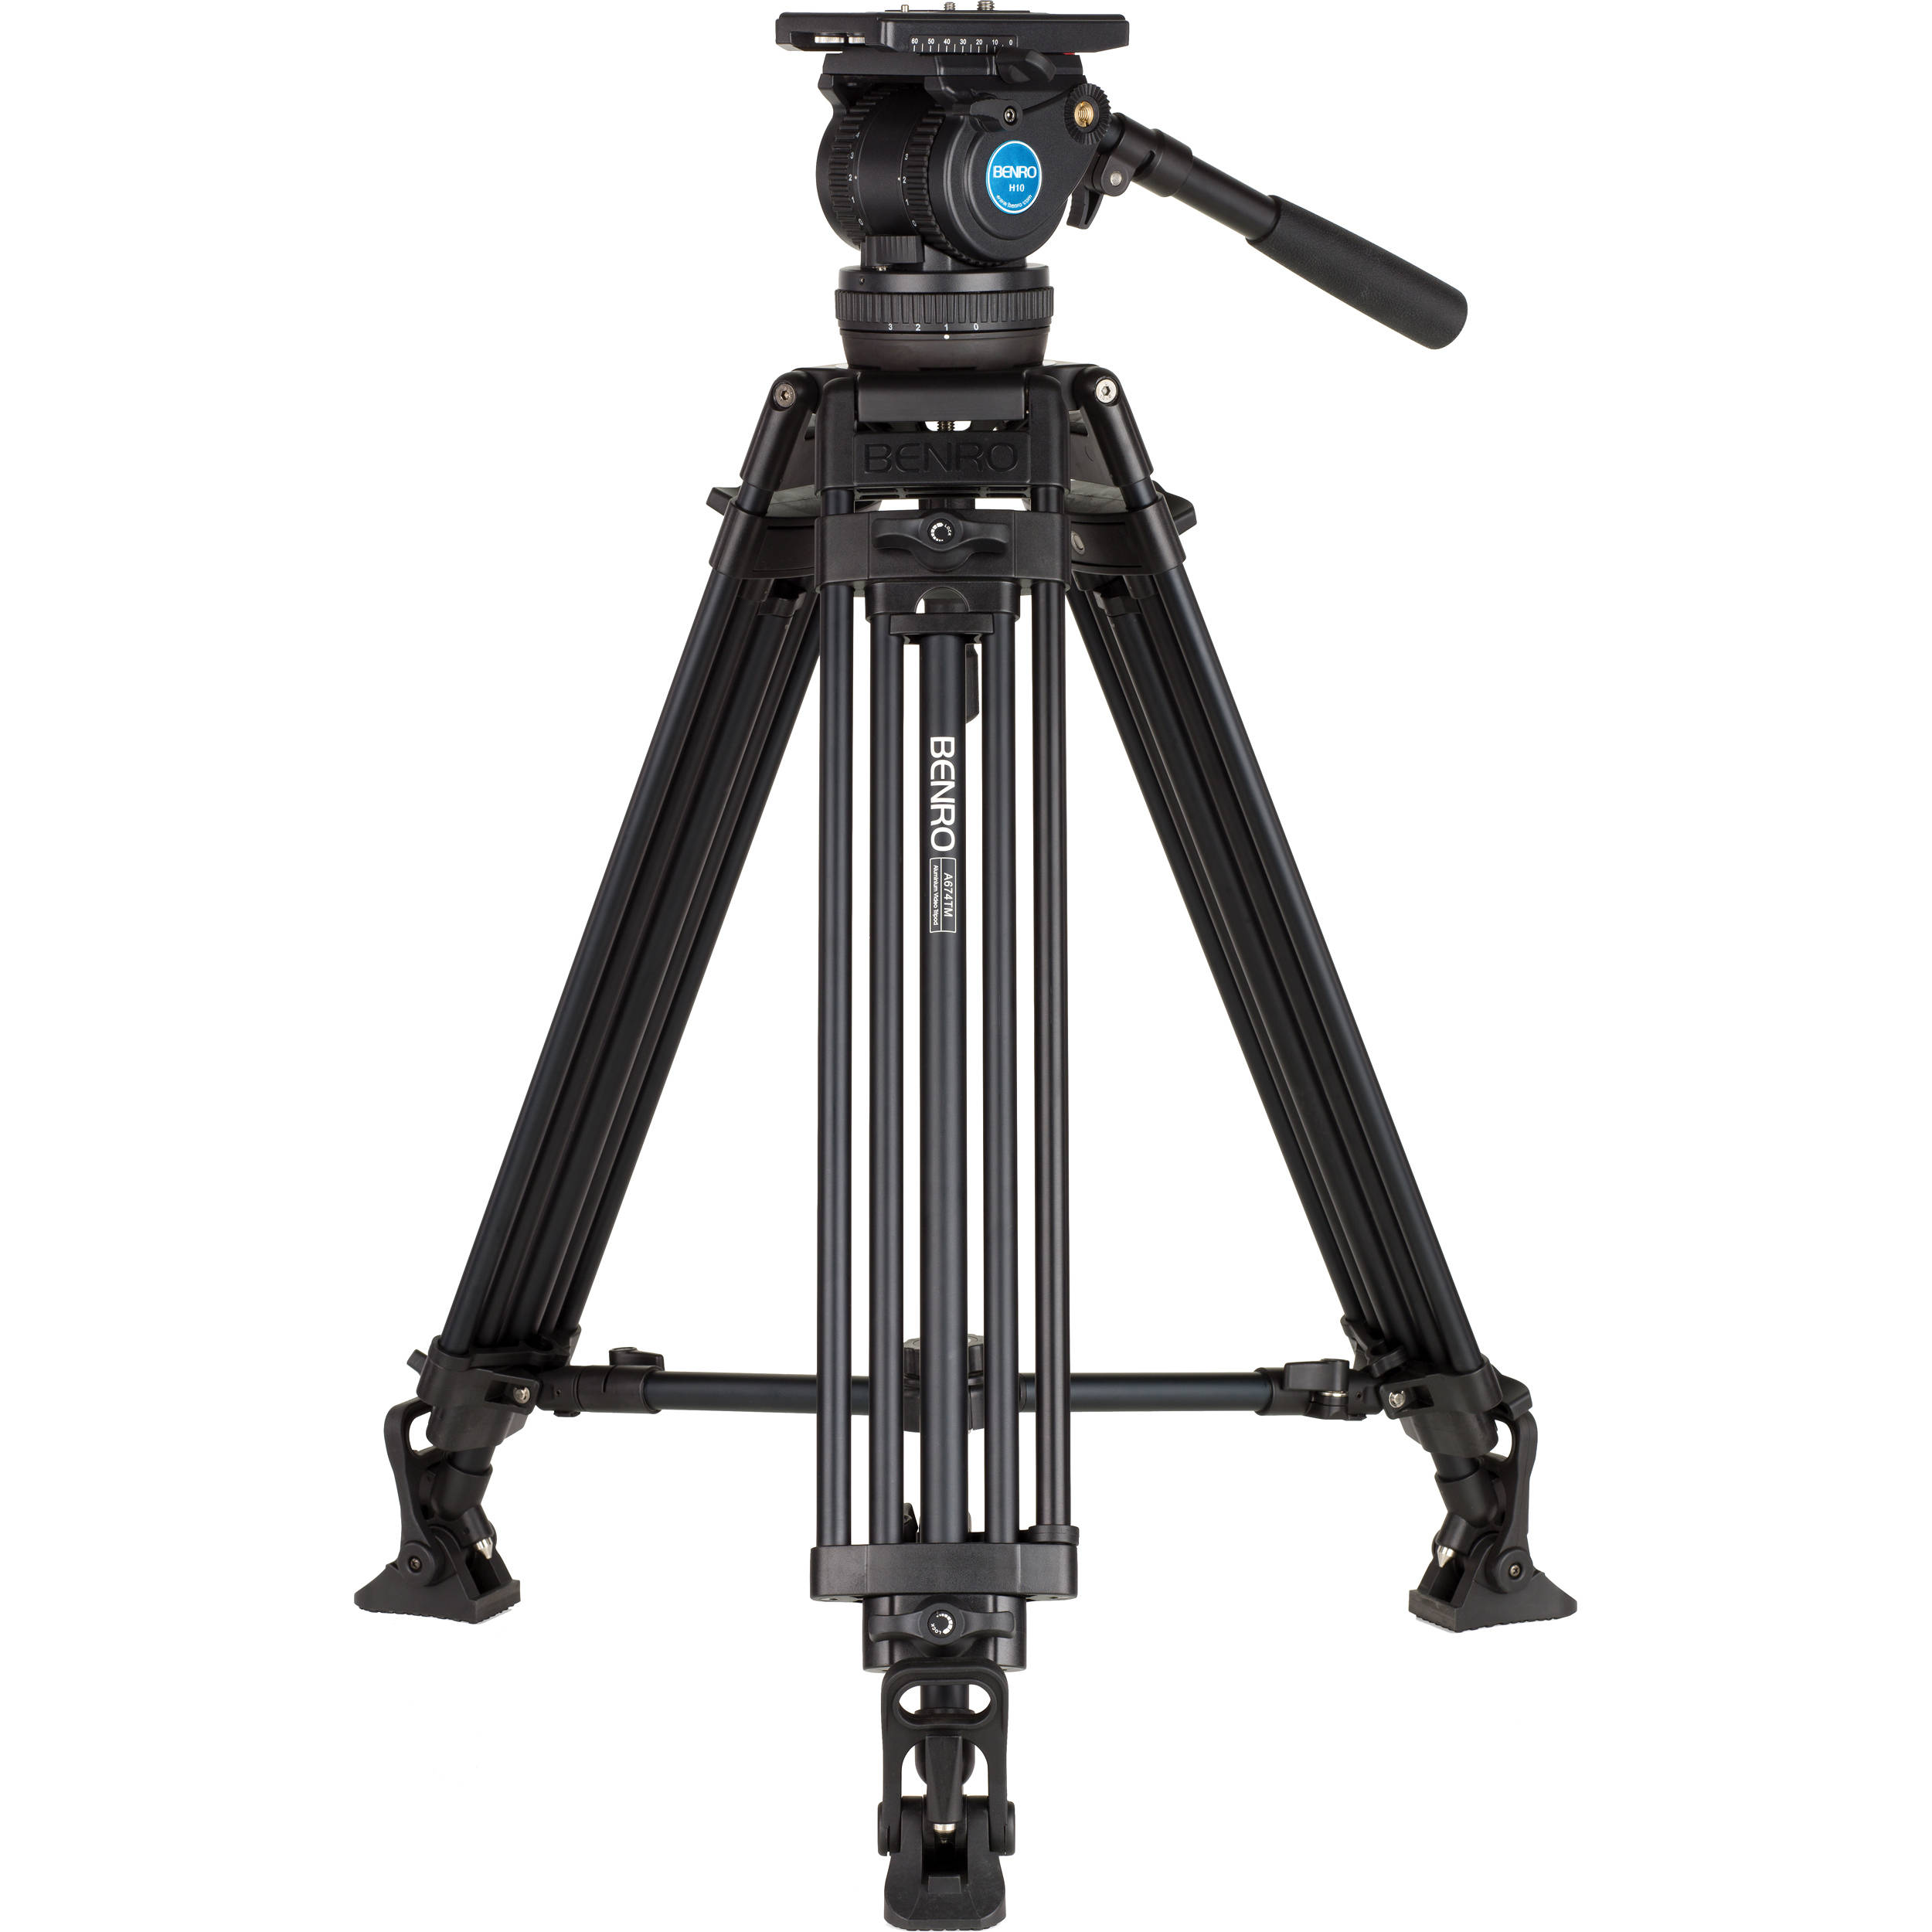 Benro H10 Video Tripod Kit with Aluminum Alloy Legs A674TMH10